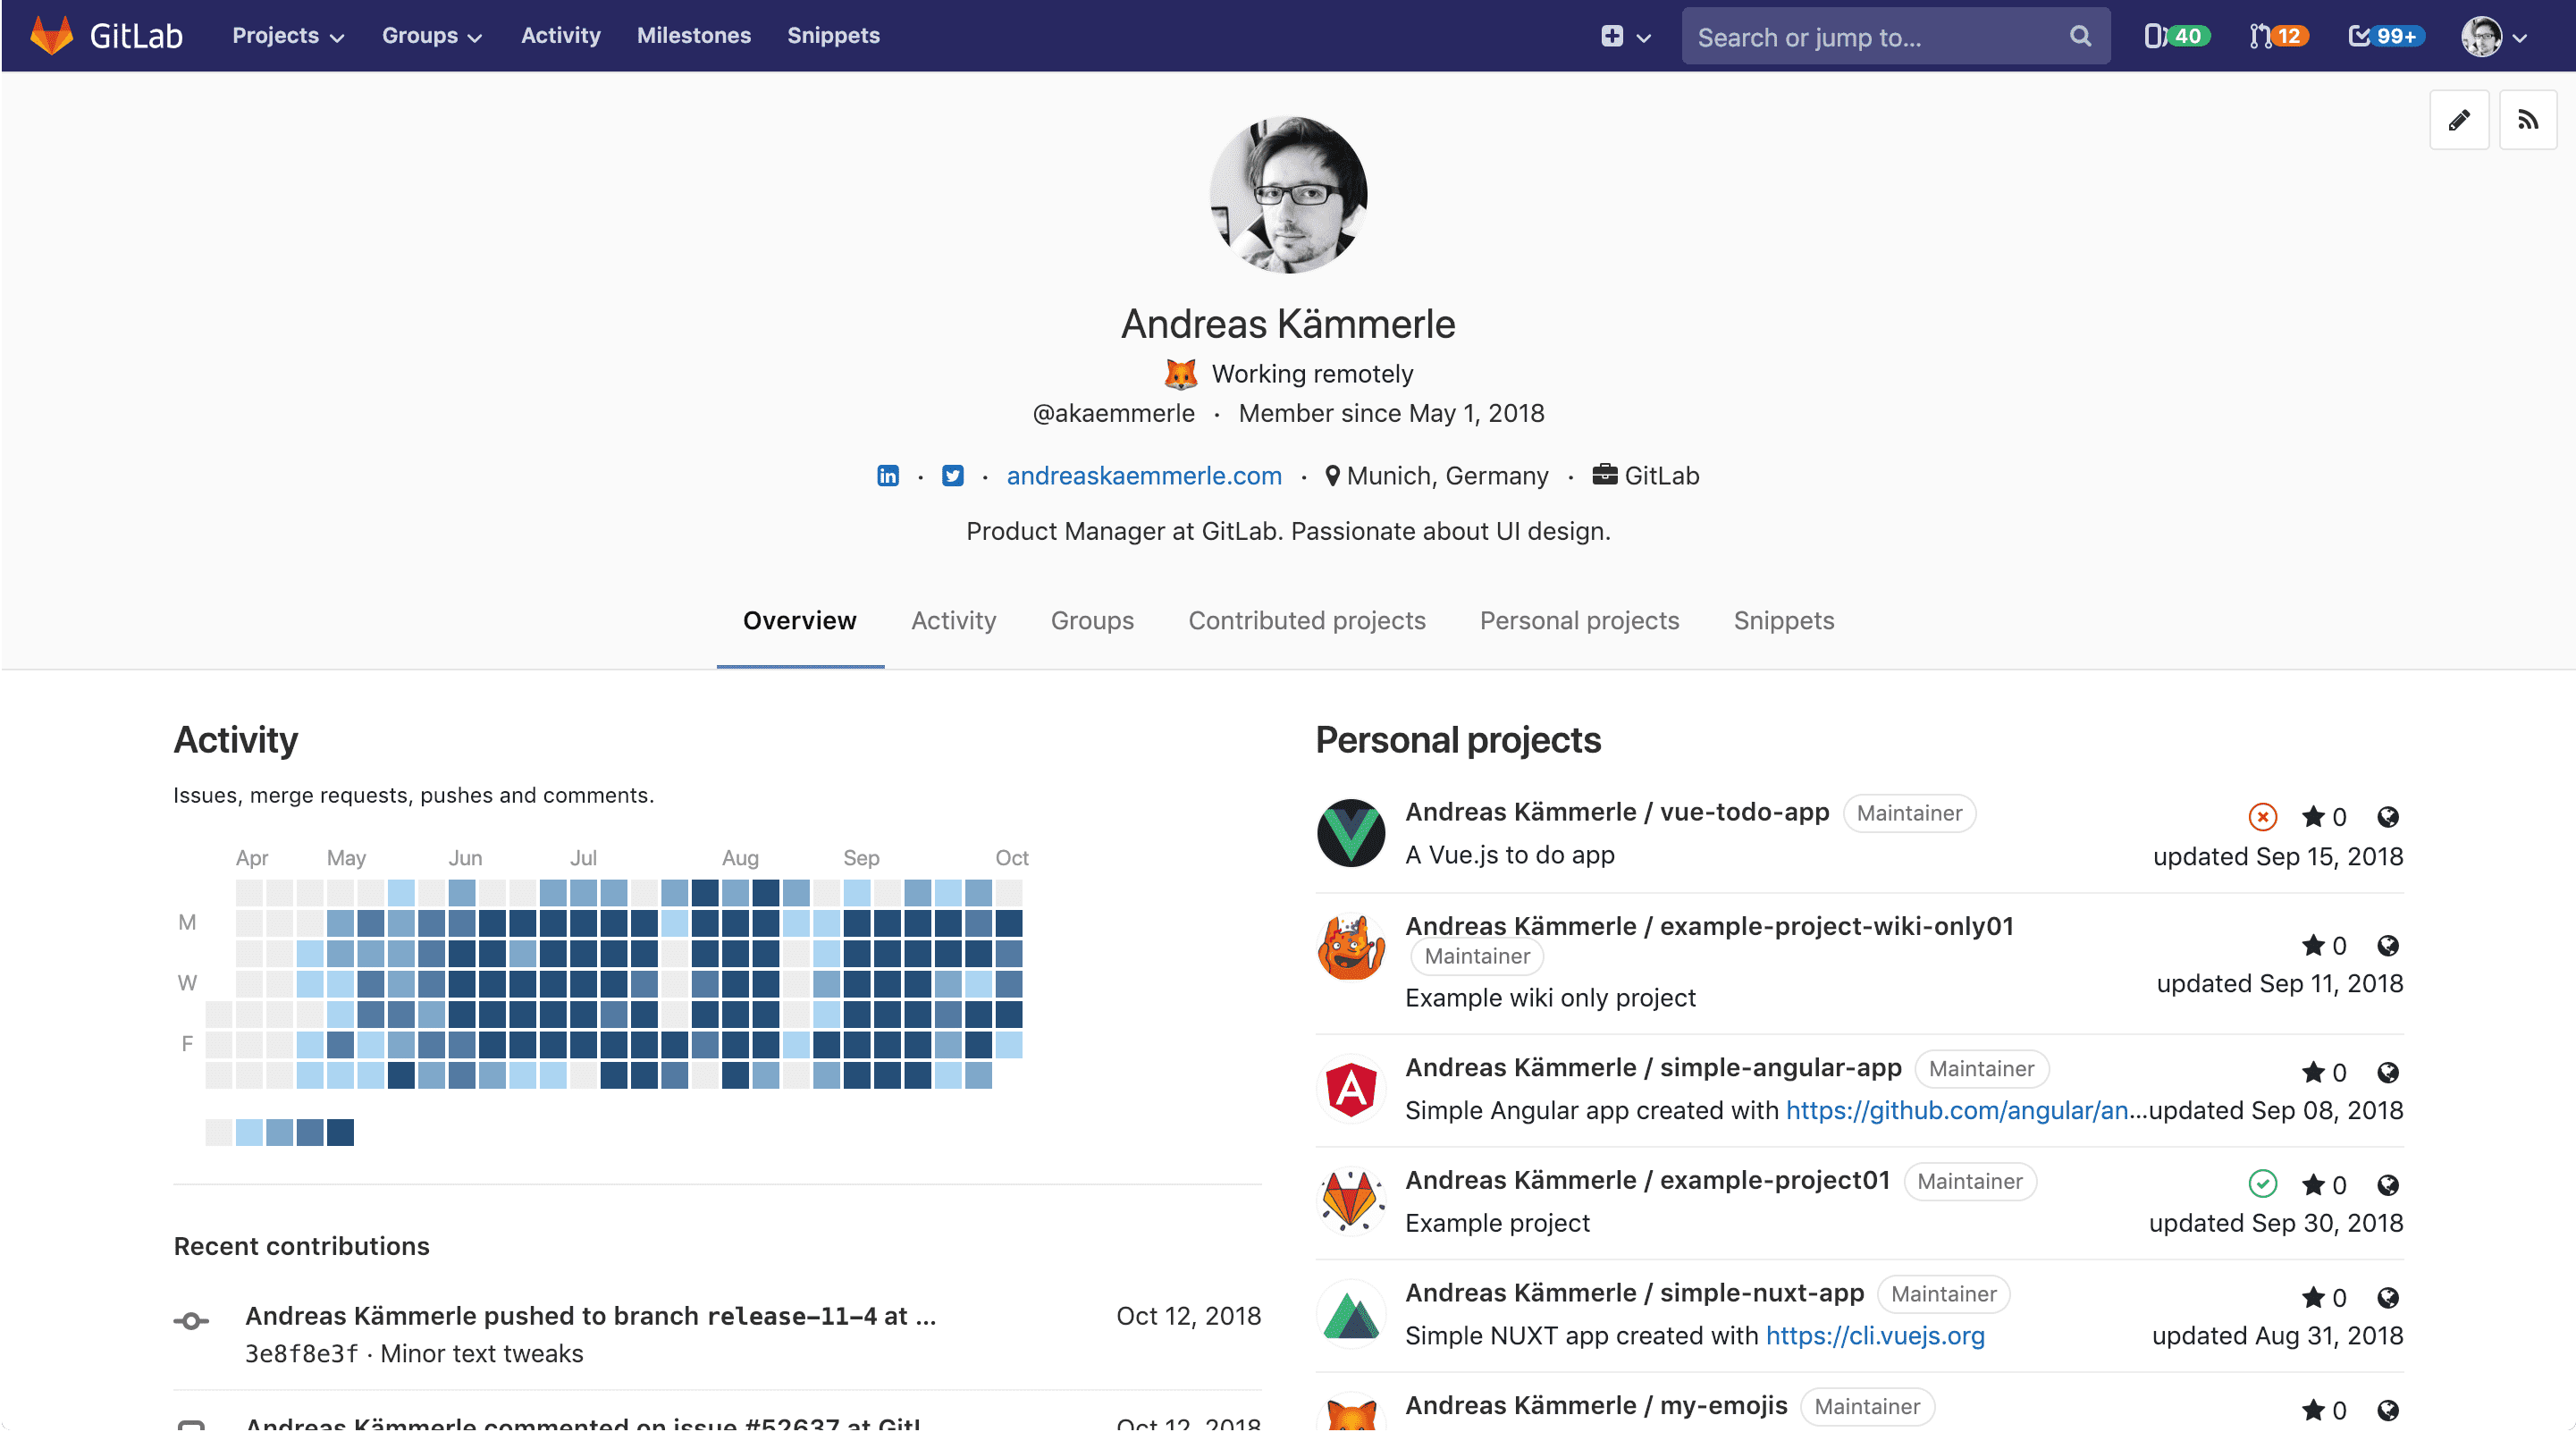 New user profile page overview